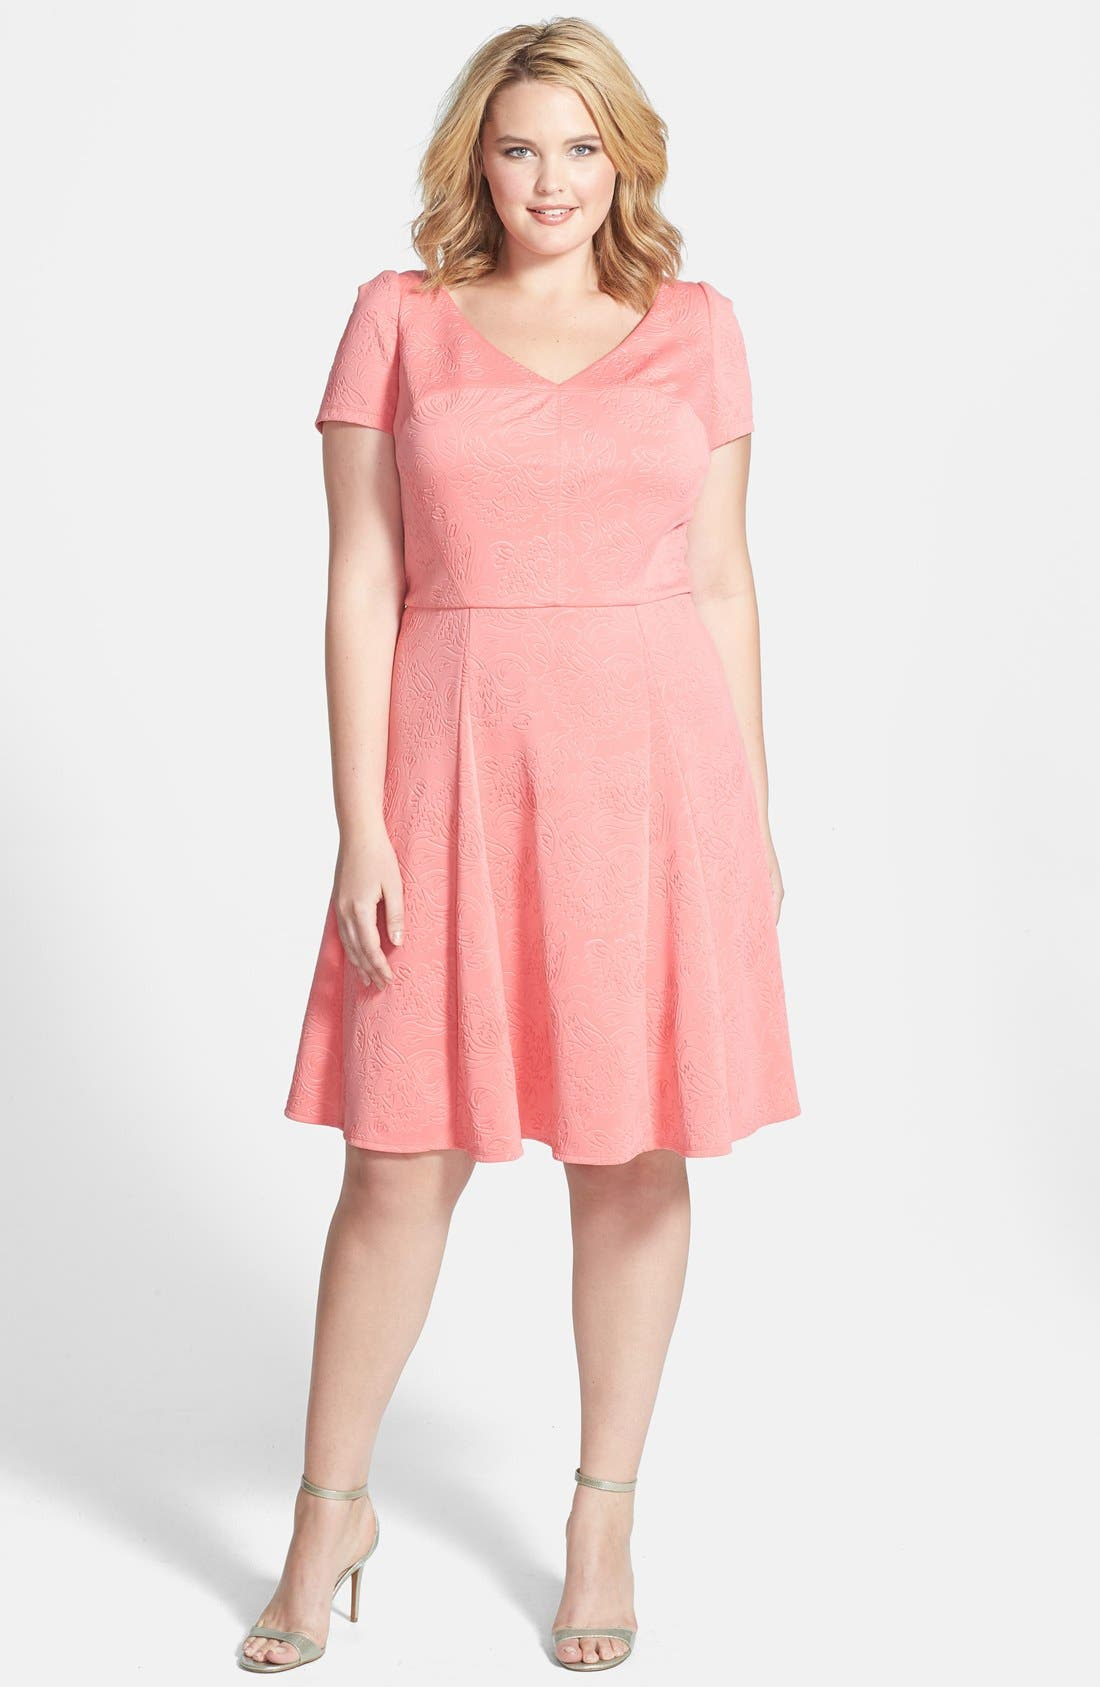 Alternate Image 1 Selected - ABS by Allen Schwartz Embossed Floral Fit & Flare Dress (Plus Size)